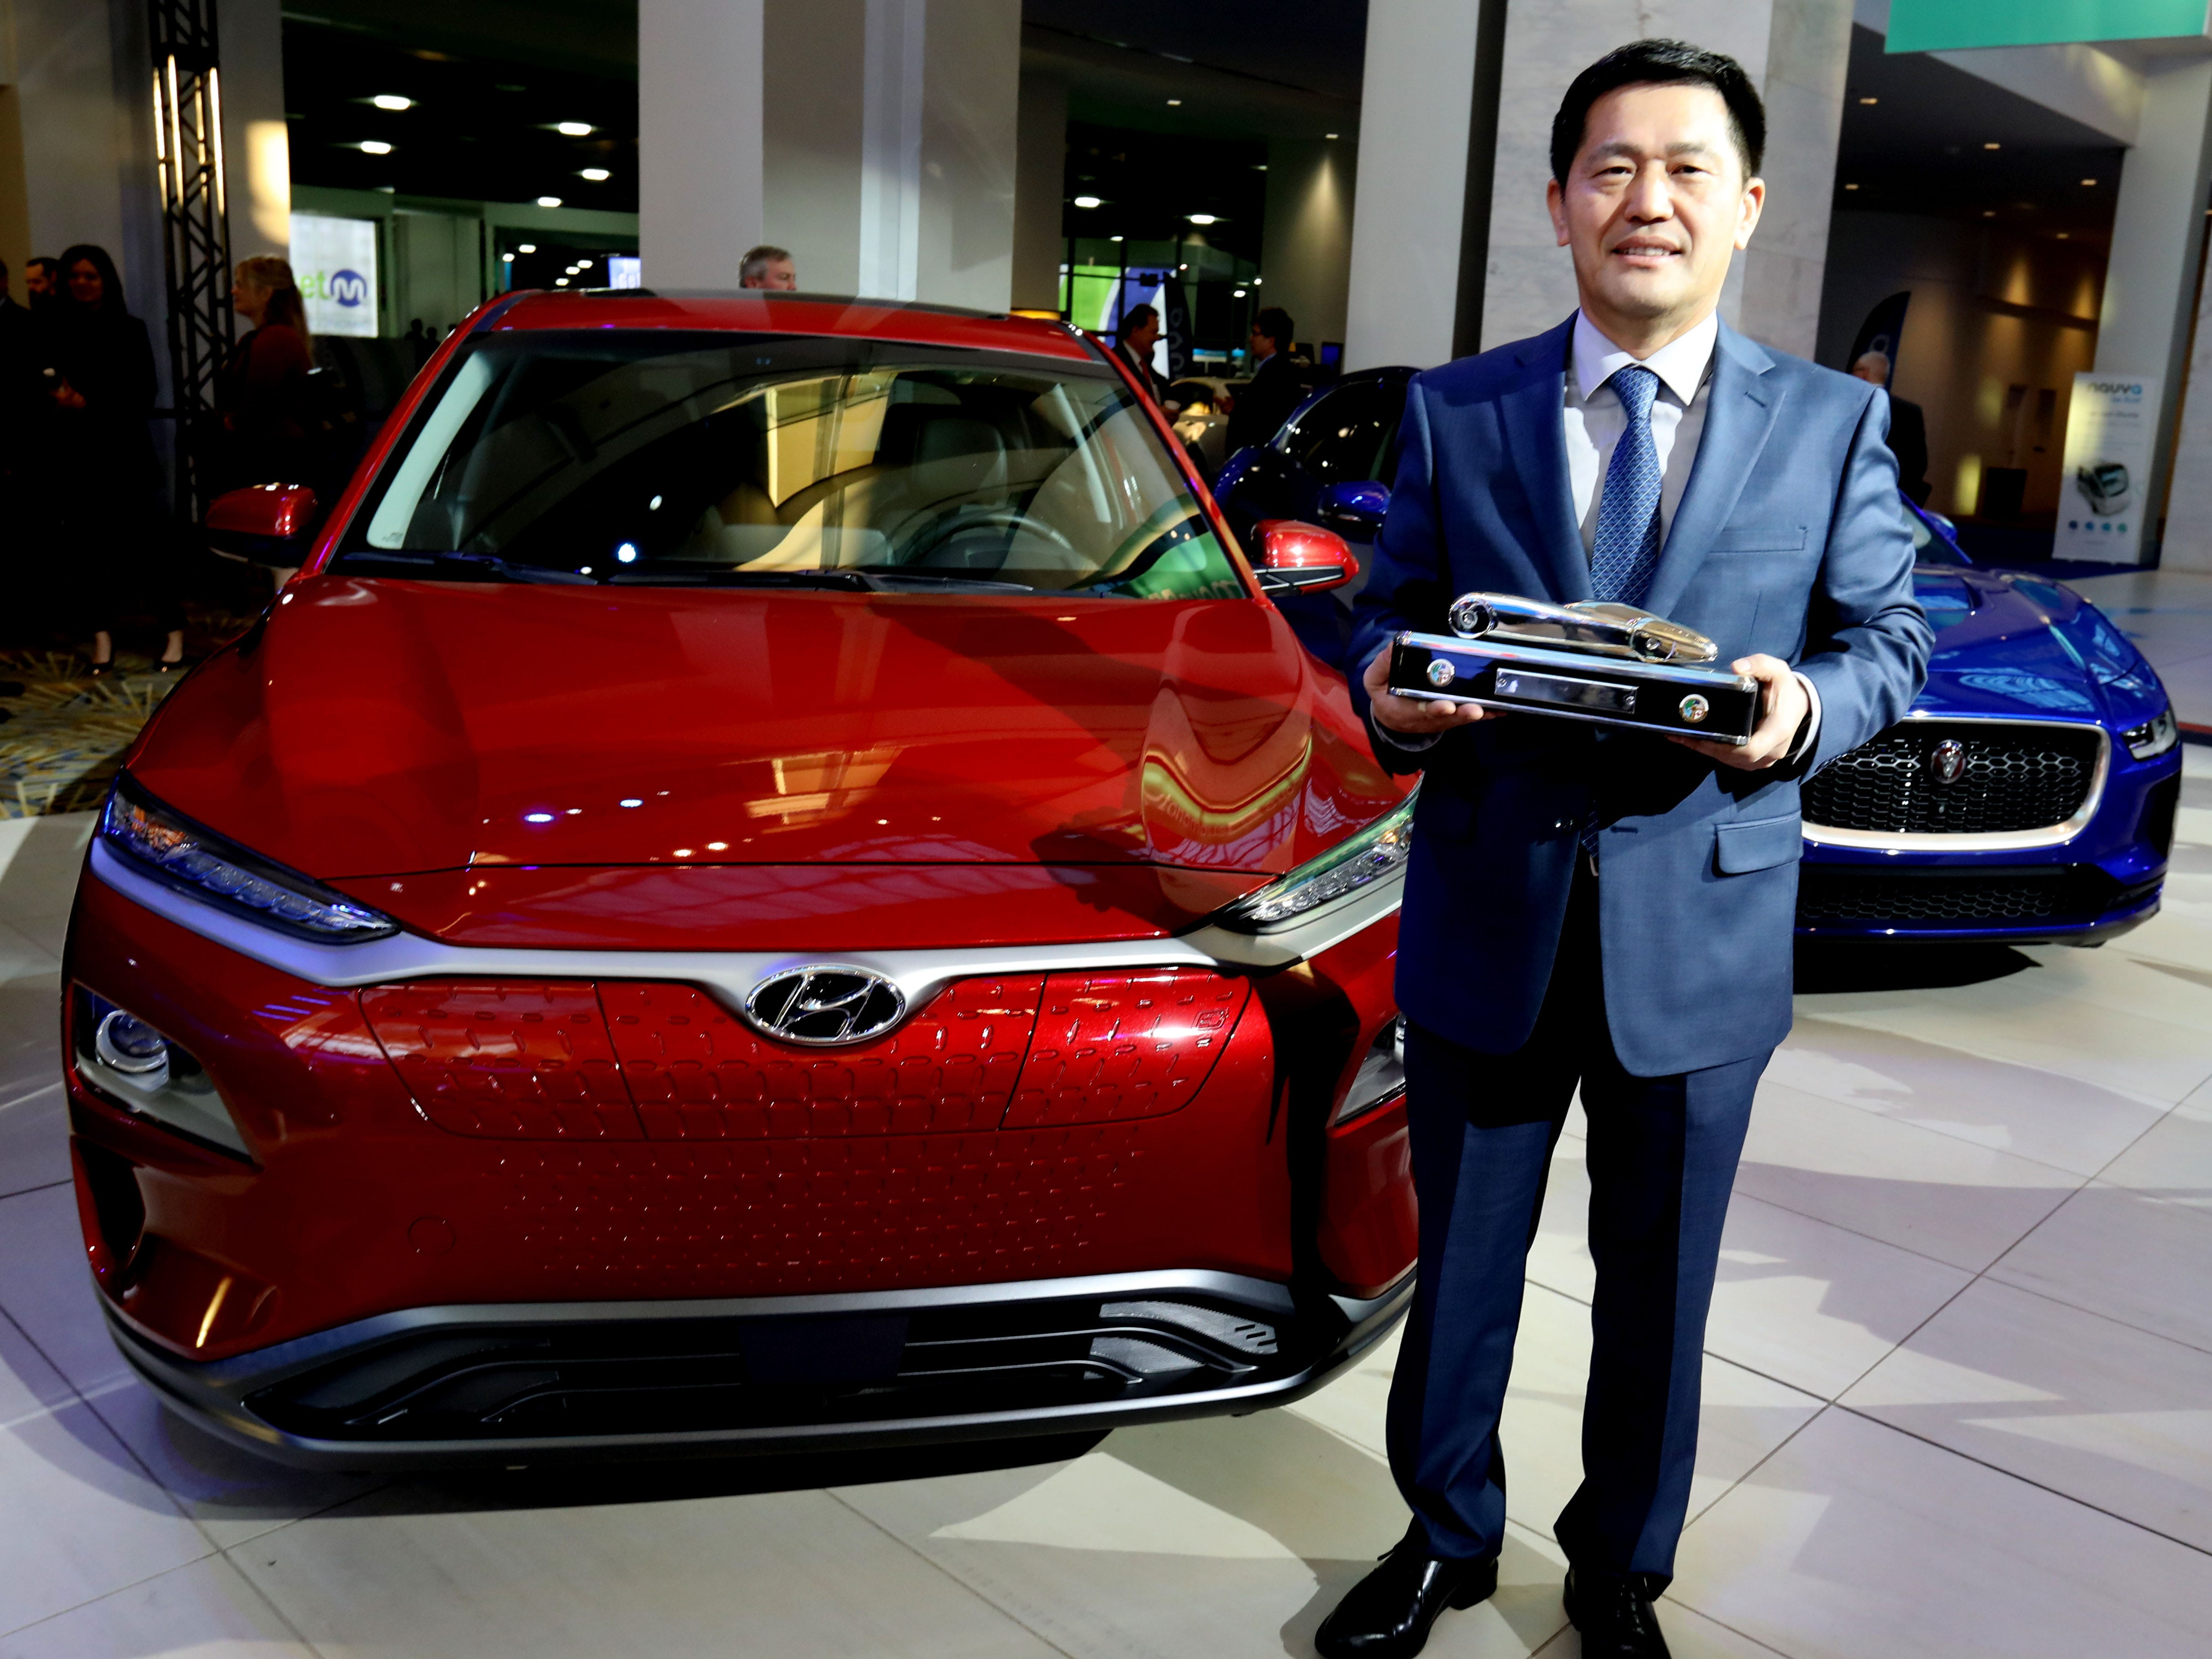 William Lee, president and CEO of Hyundai Motor North America holds the trophy in front of the Hyundai Kona which won the North American Sport Utility of the Year.